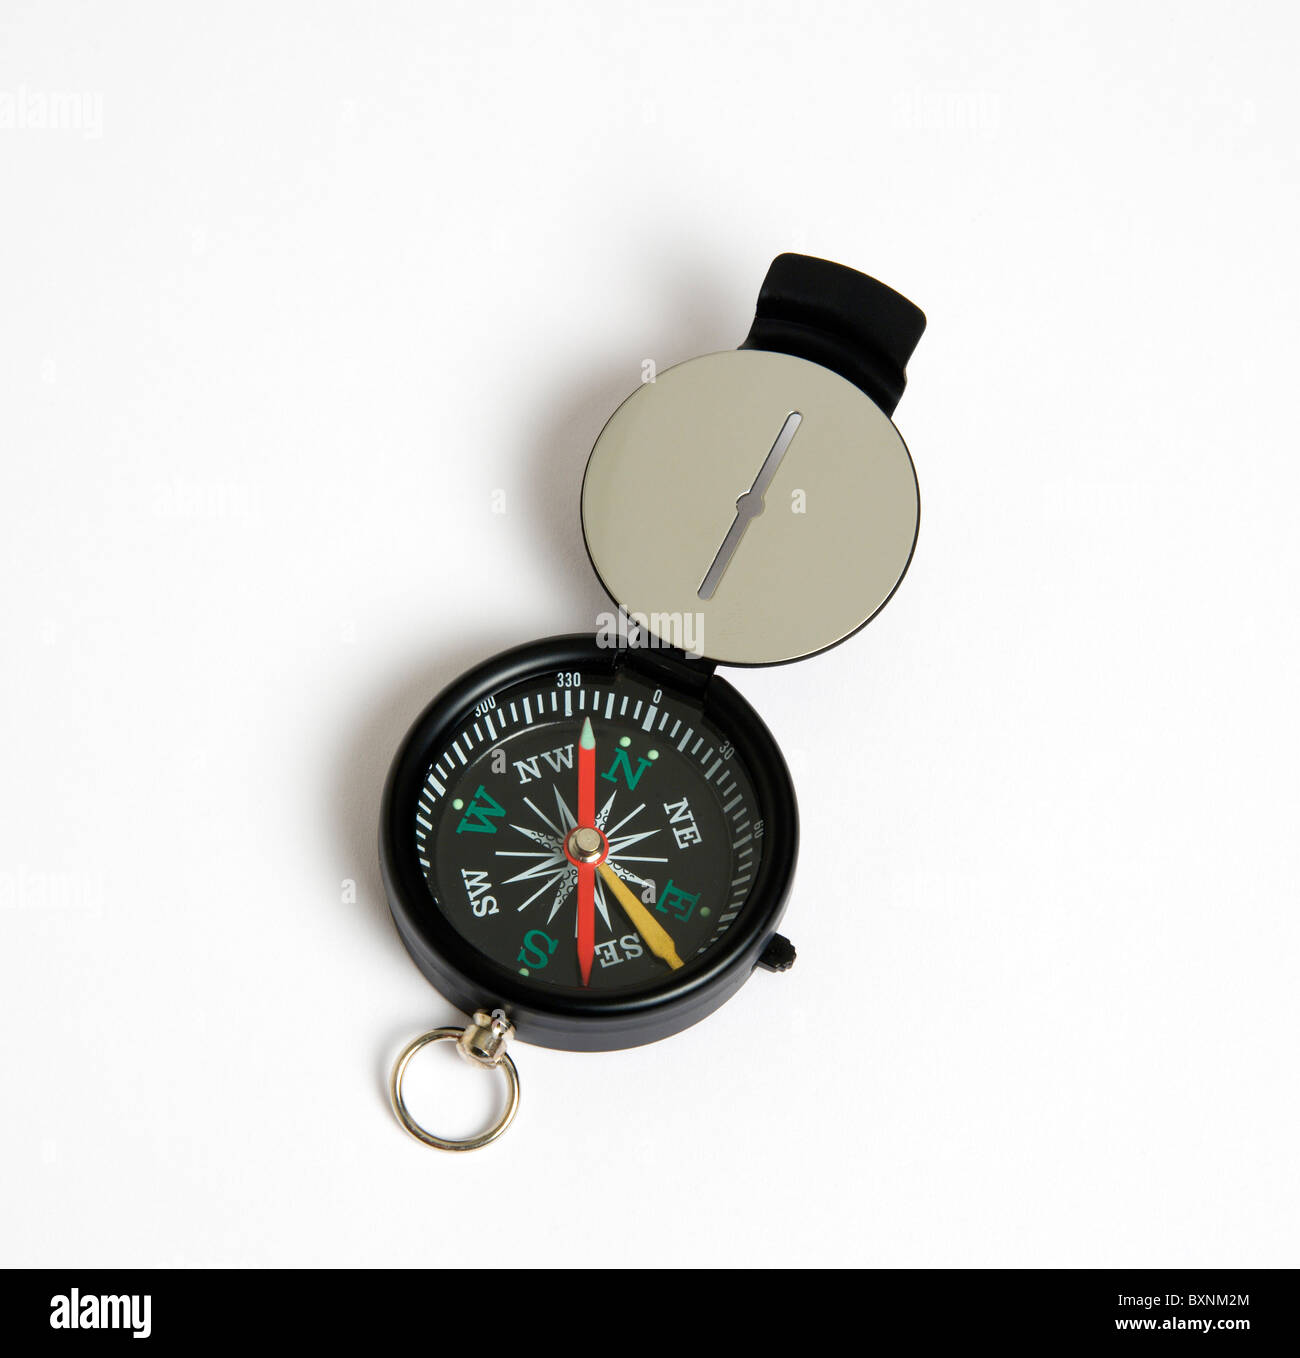 Travel, Navigation, Map Reading, Sighting compass with dial pointing to magnetic north on a white background. - Stock Image